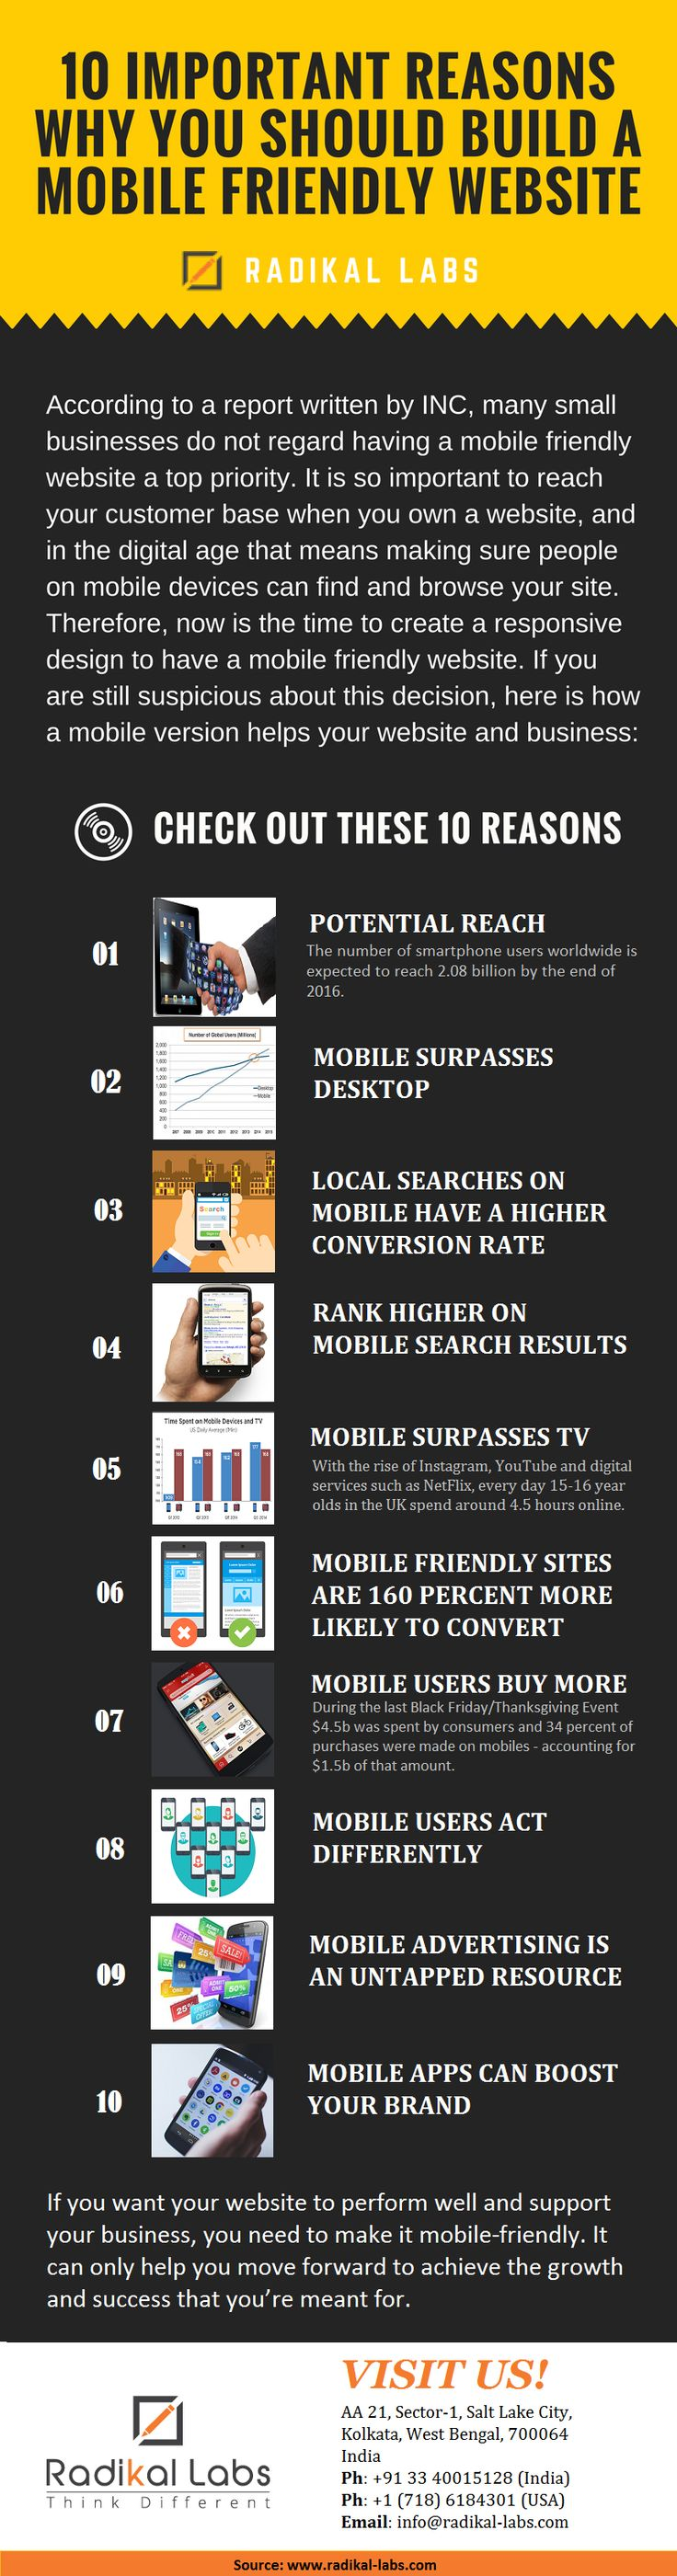 Smartphones and other mobile devices are more popular than ever before (and they are not going anywhere anytime soon), so optimizing your website for mobile isn't just a trend or a side option, like it might have been in years past.